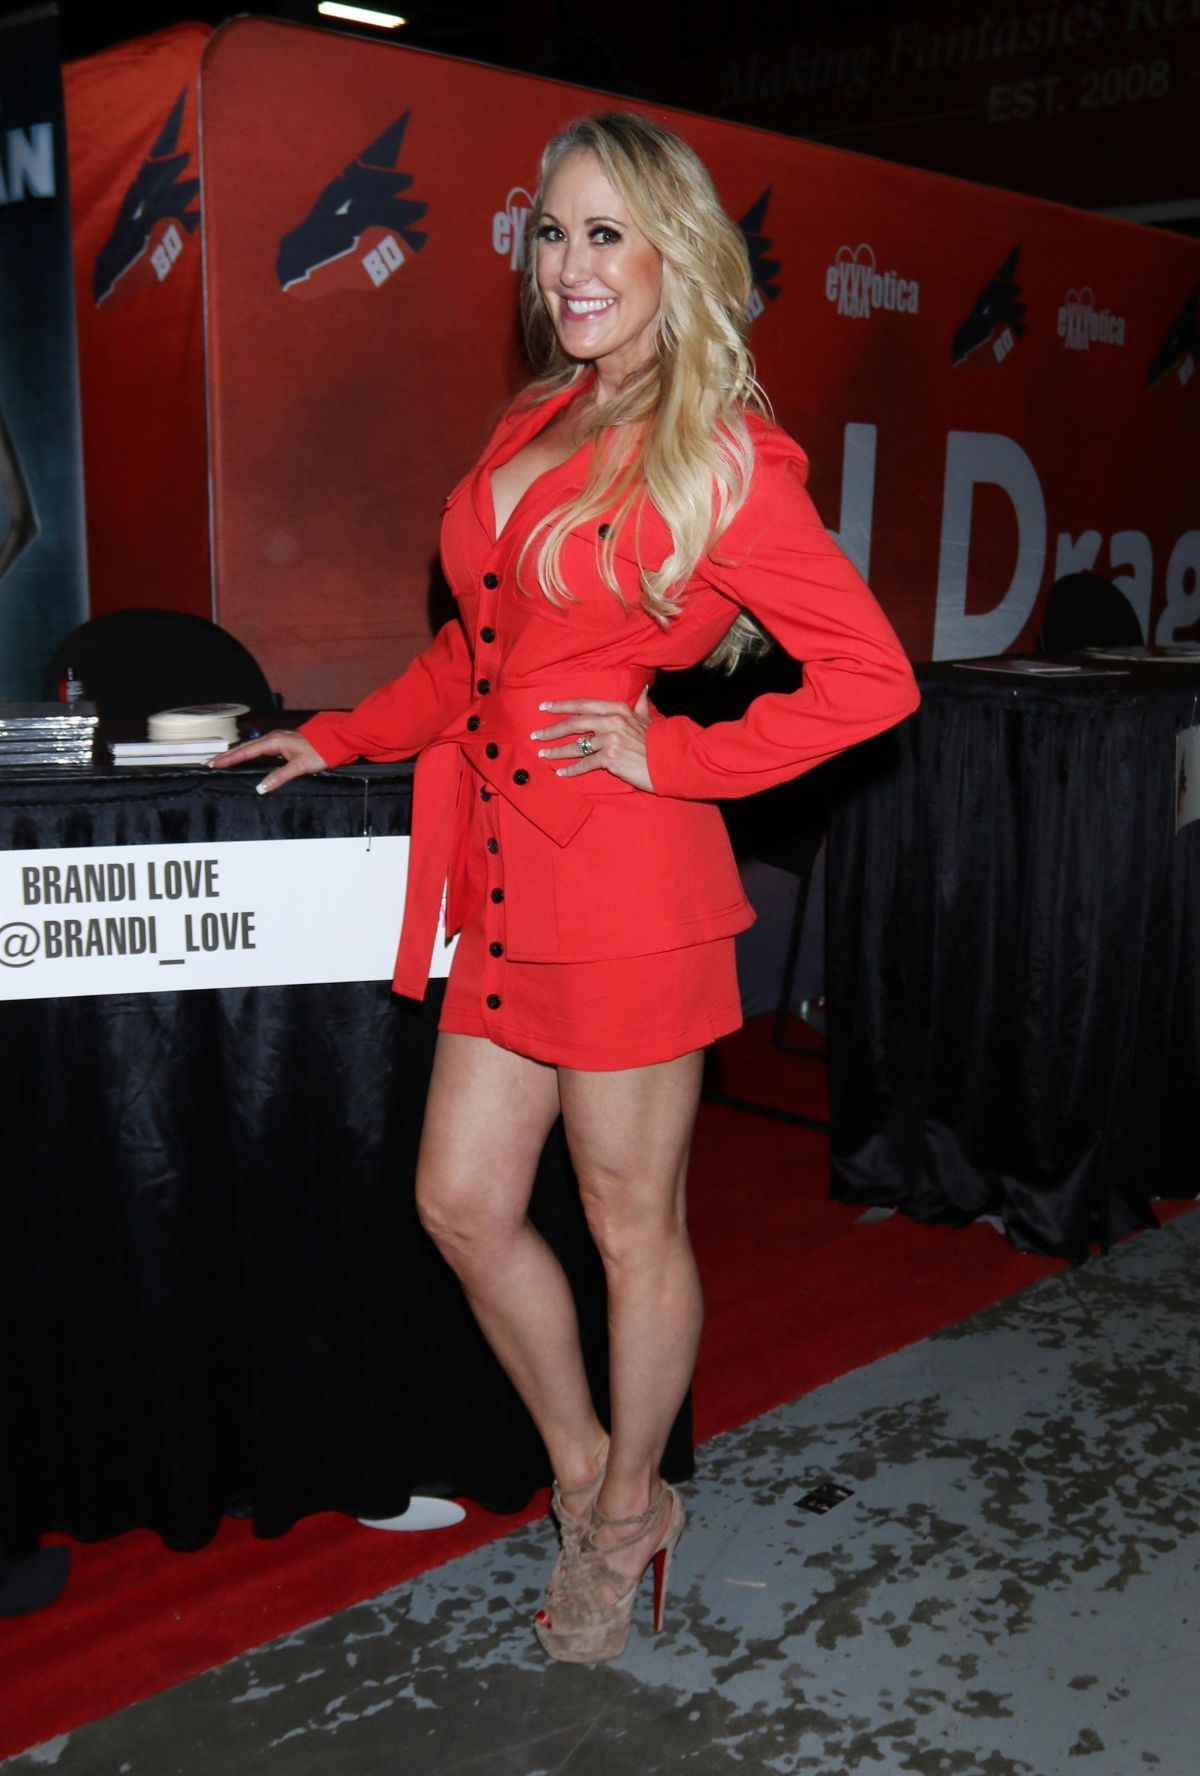 Brandi Love Wallpaper